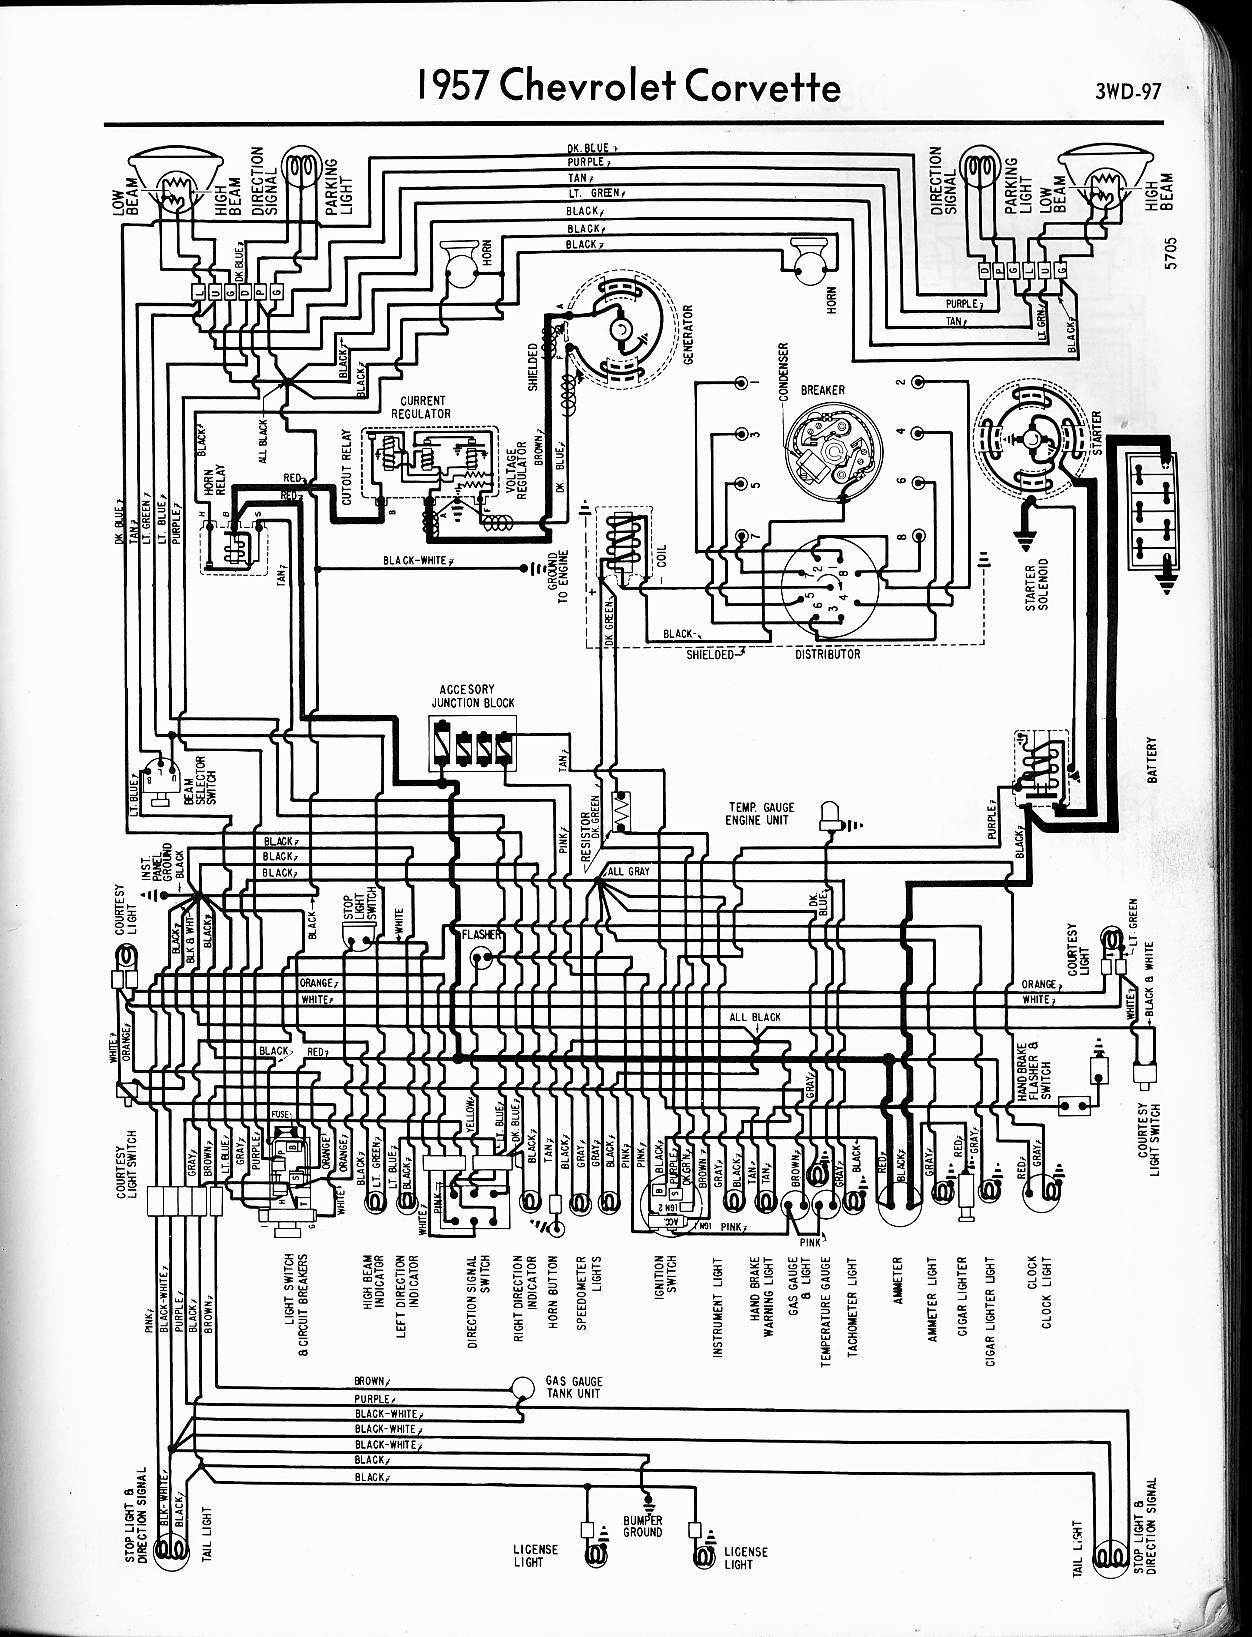 MWireChev57_3WD 097 57 65 chevy wiring diagrams chevrolet wiring diagram at mifinder.co